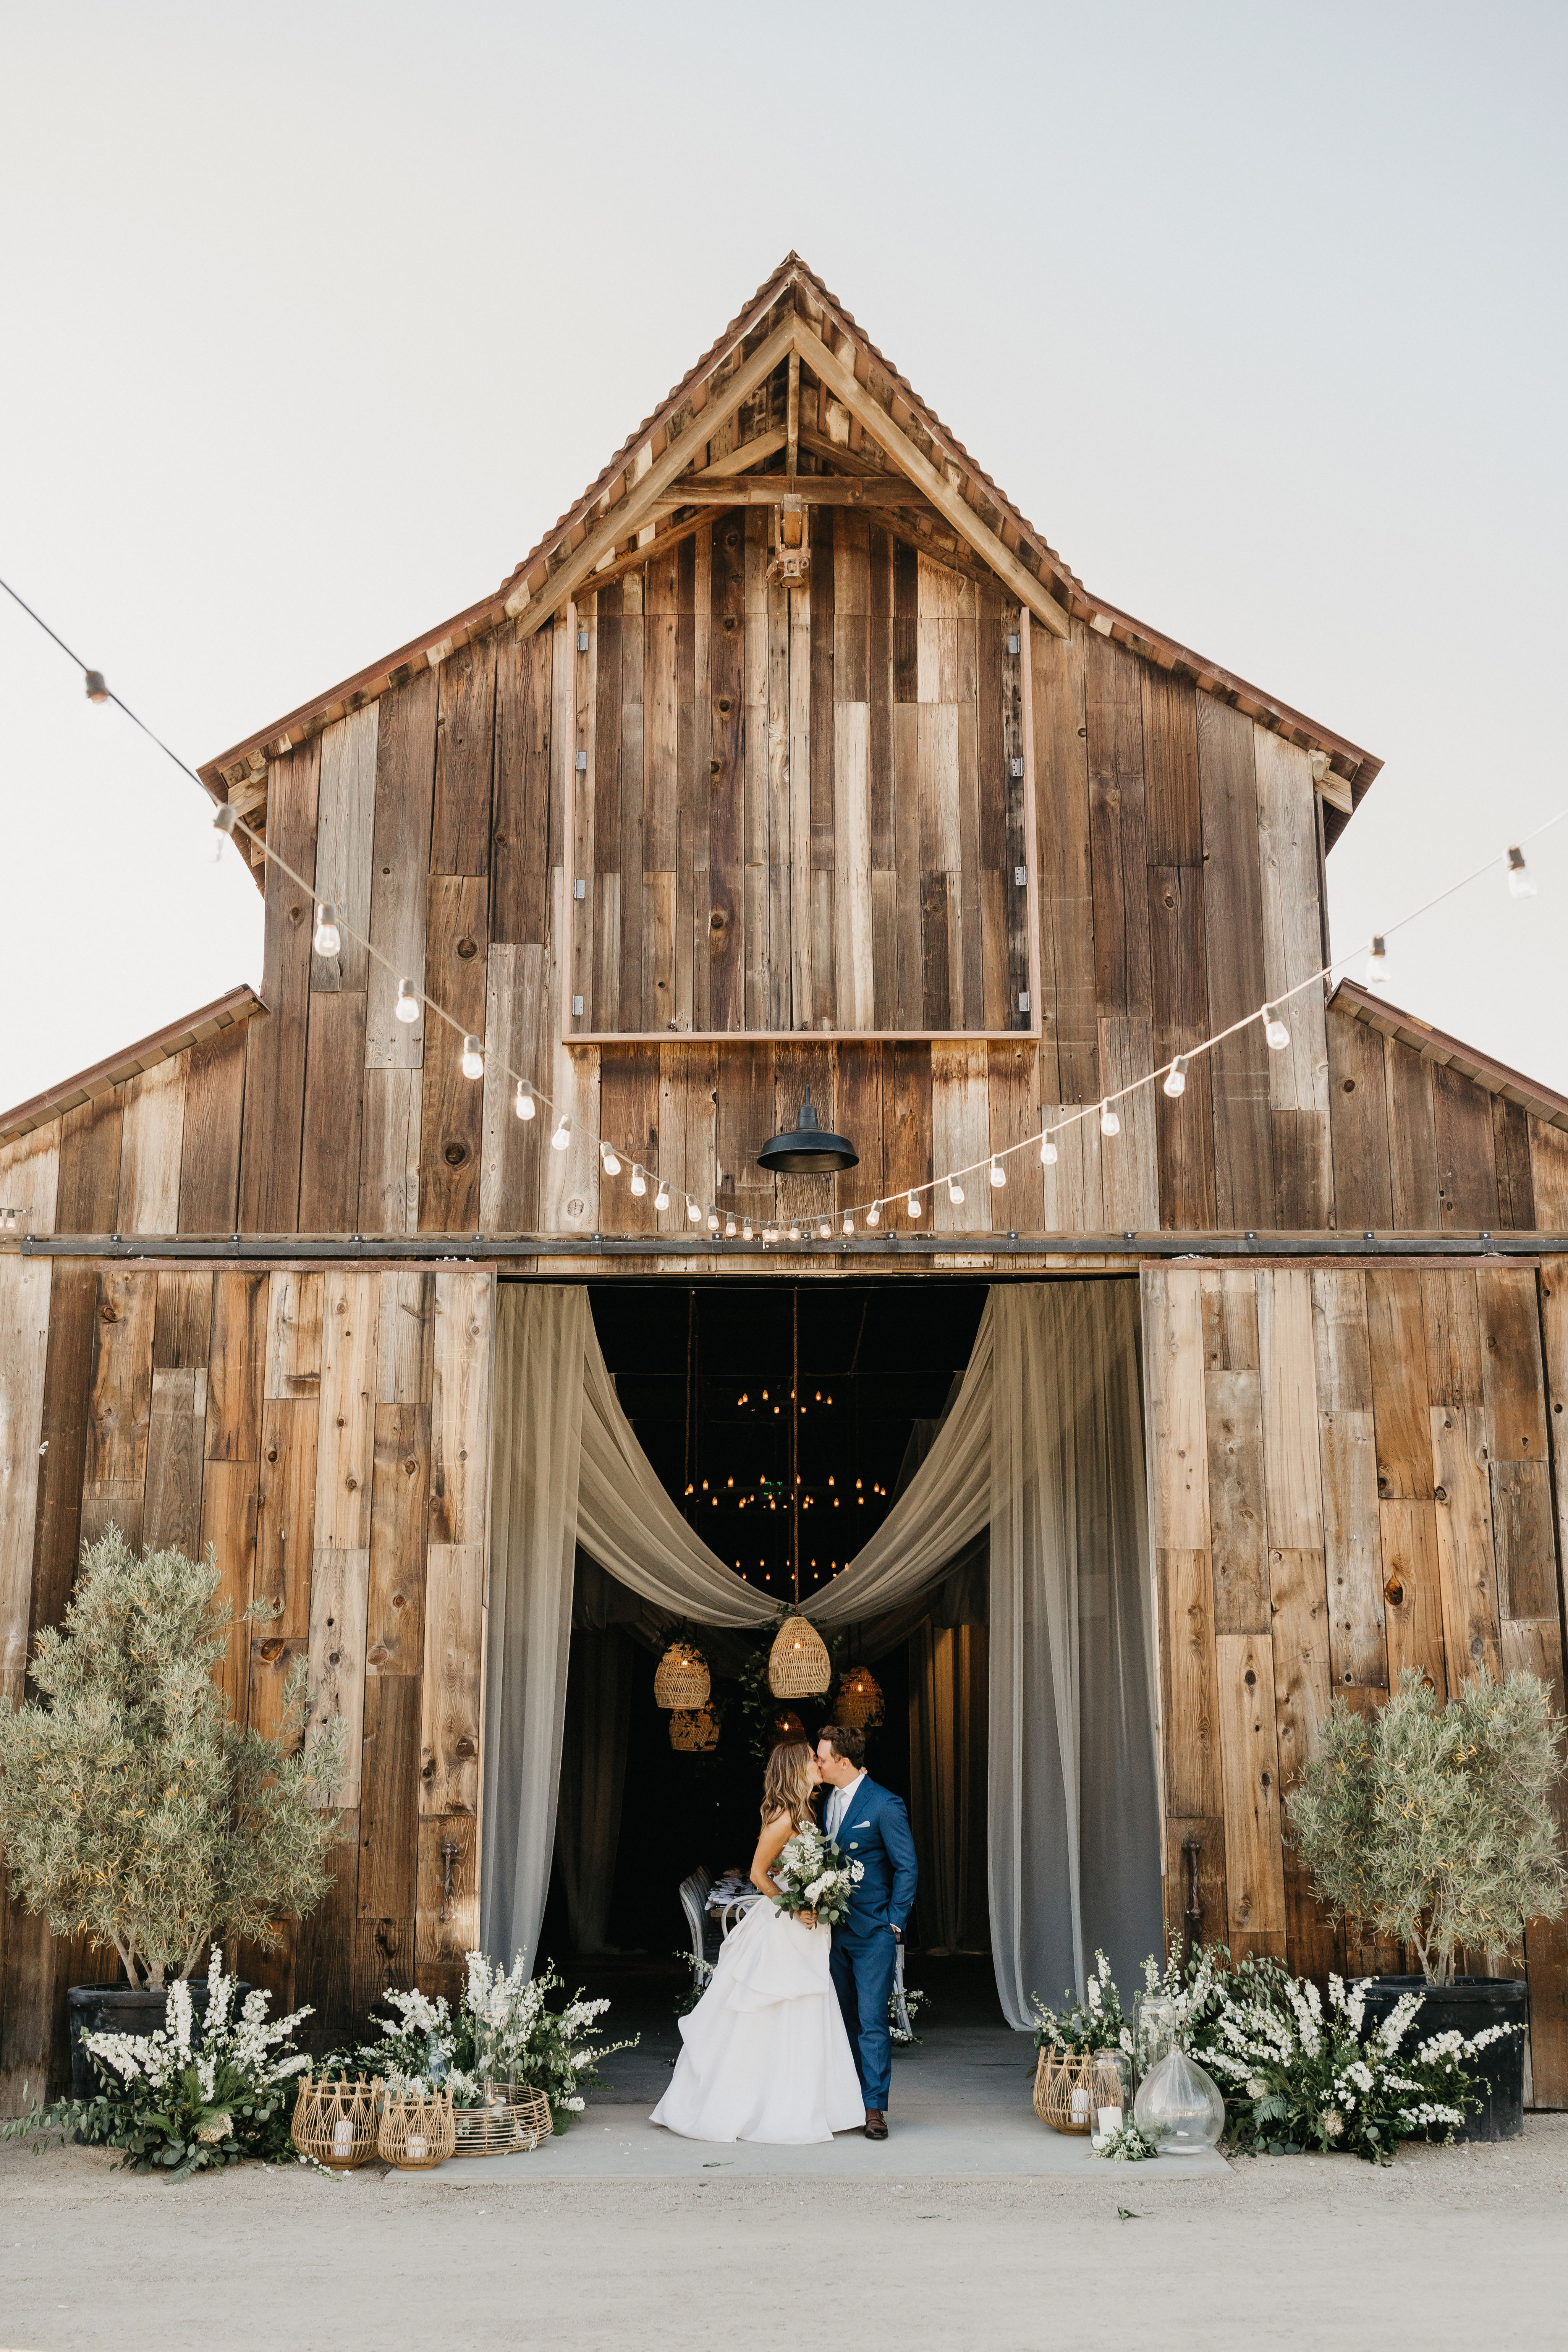 39 Barn Wedding Ideas for Any (Yes, Any!) Style